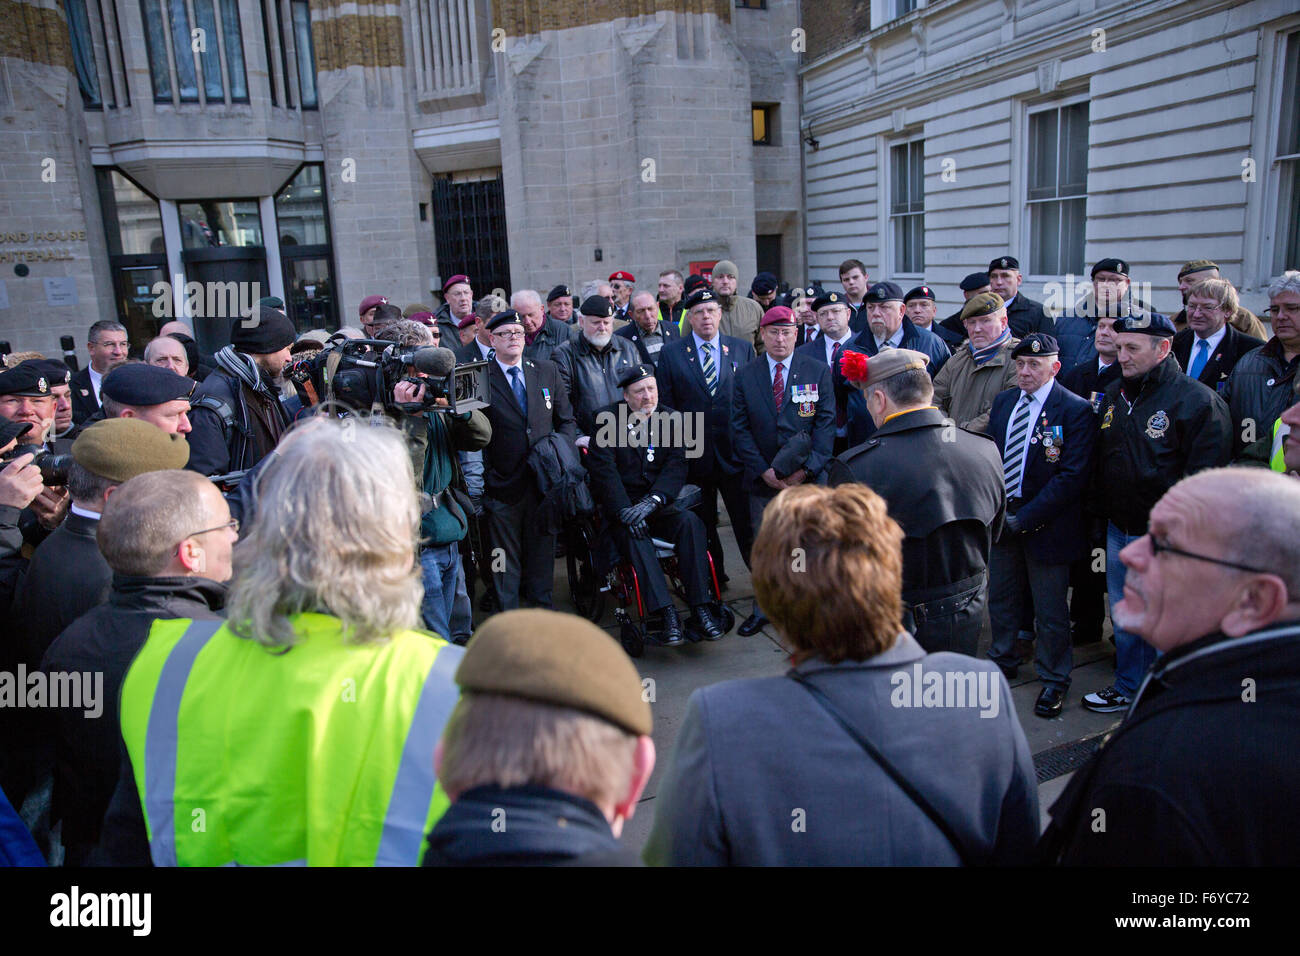 London, UK. 21st Nov, 2015. British military veterans rally in front of Downing Street in support of Soldier J, - Stock Image